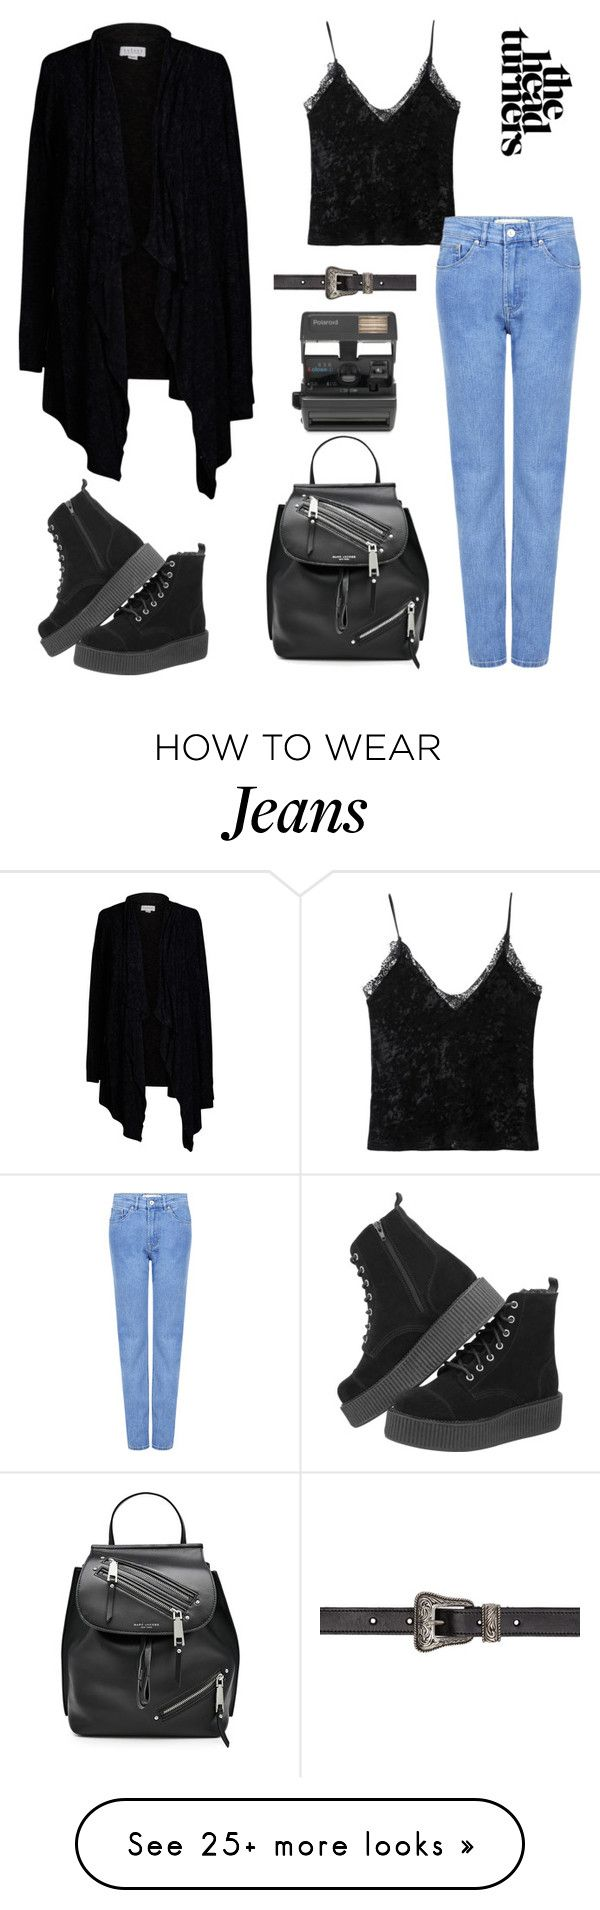 """""""head turner all black and jeans :)"""" by moumantai13 on Polyvore featuring Velvet by Graham & Spencer, Être Cécile, Marc Jacobs, Yves Saint Laurent and Impossible"""